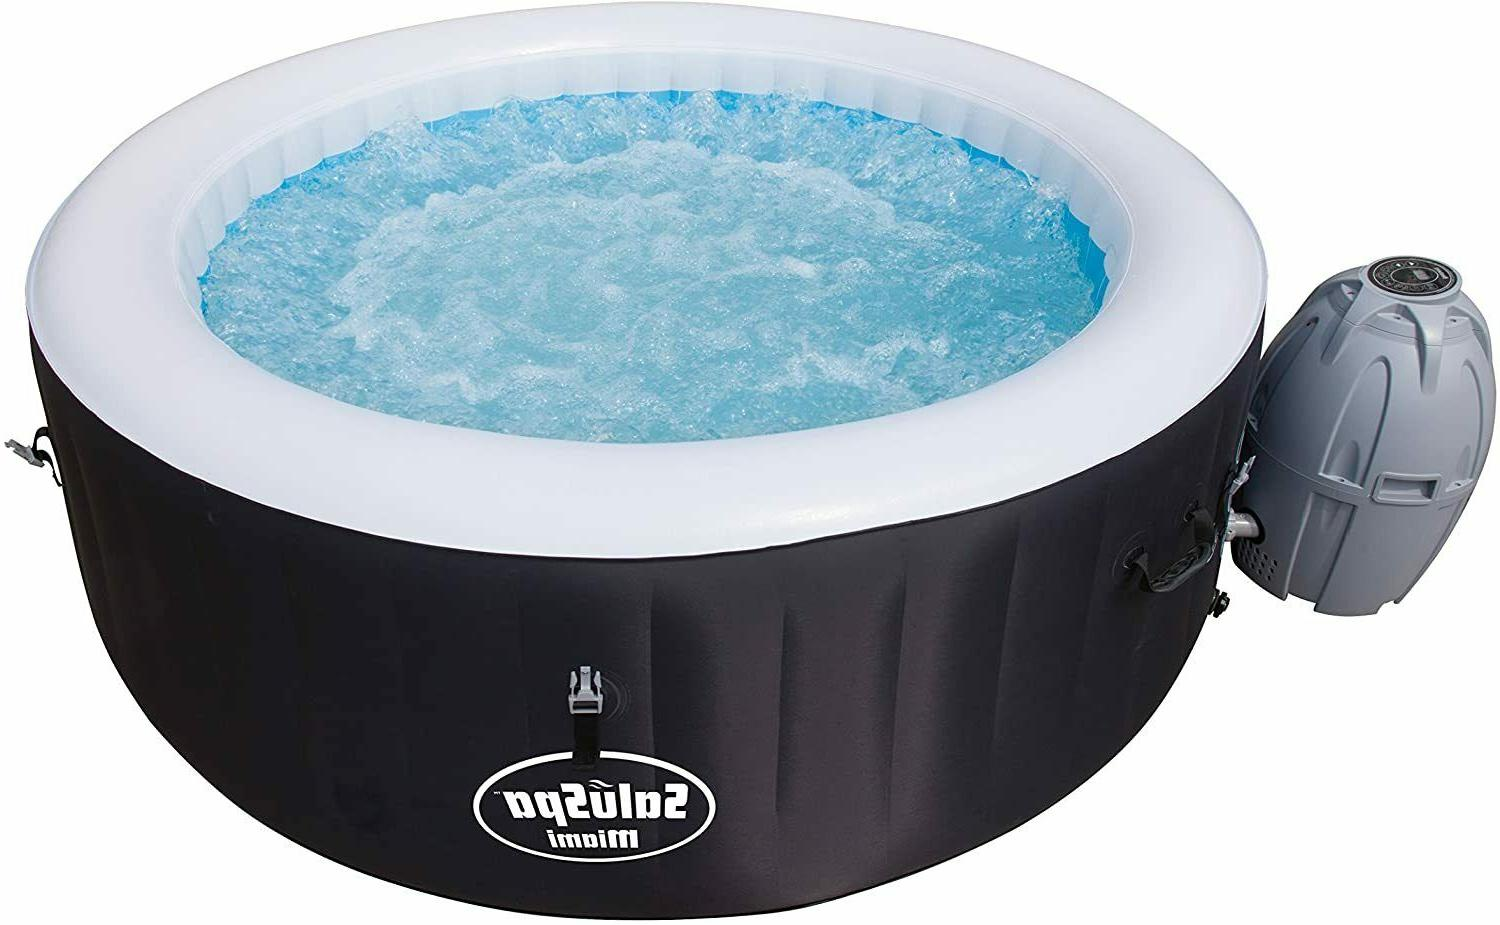 Bestway Miami Hot Tub 4-Person Spa NEW❗SEALED❗FAST❗